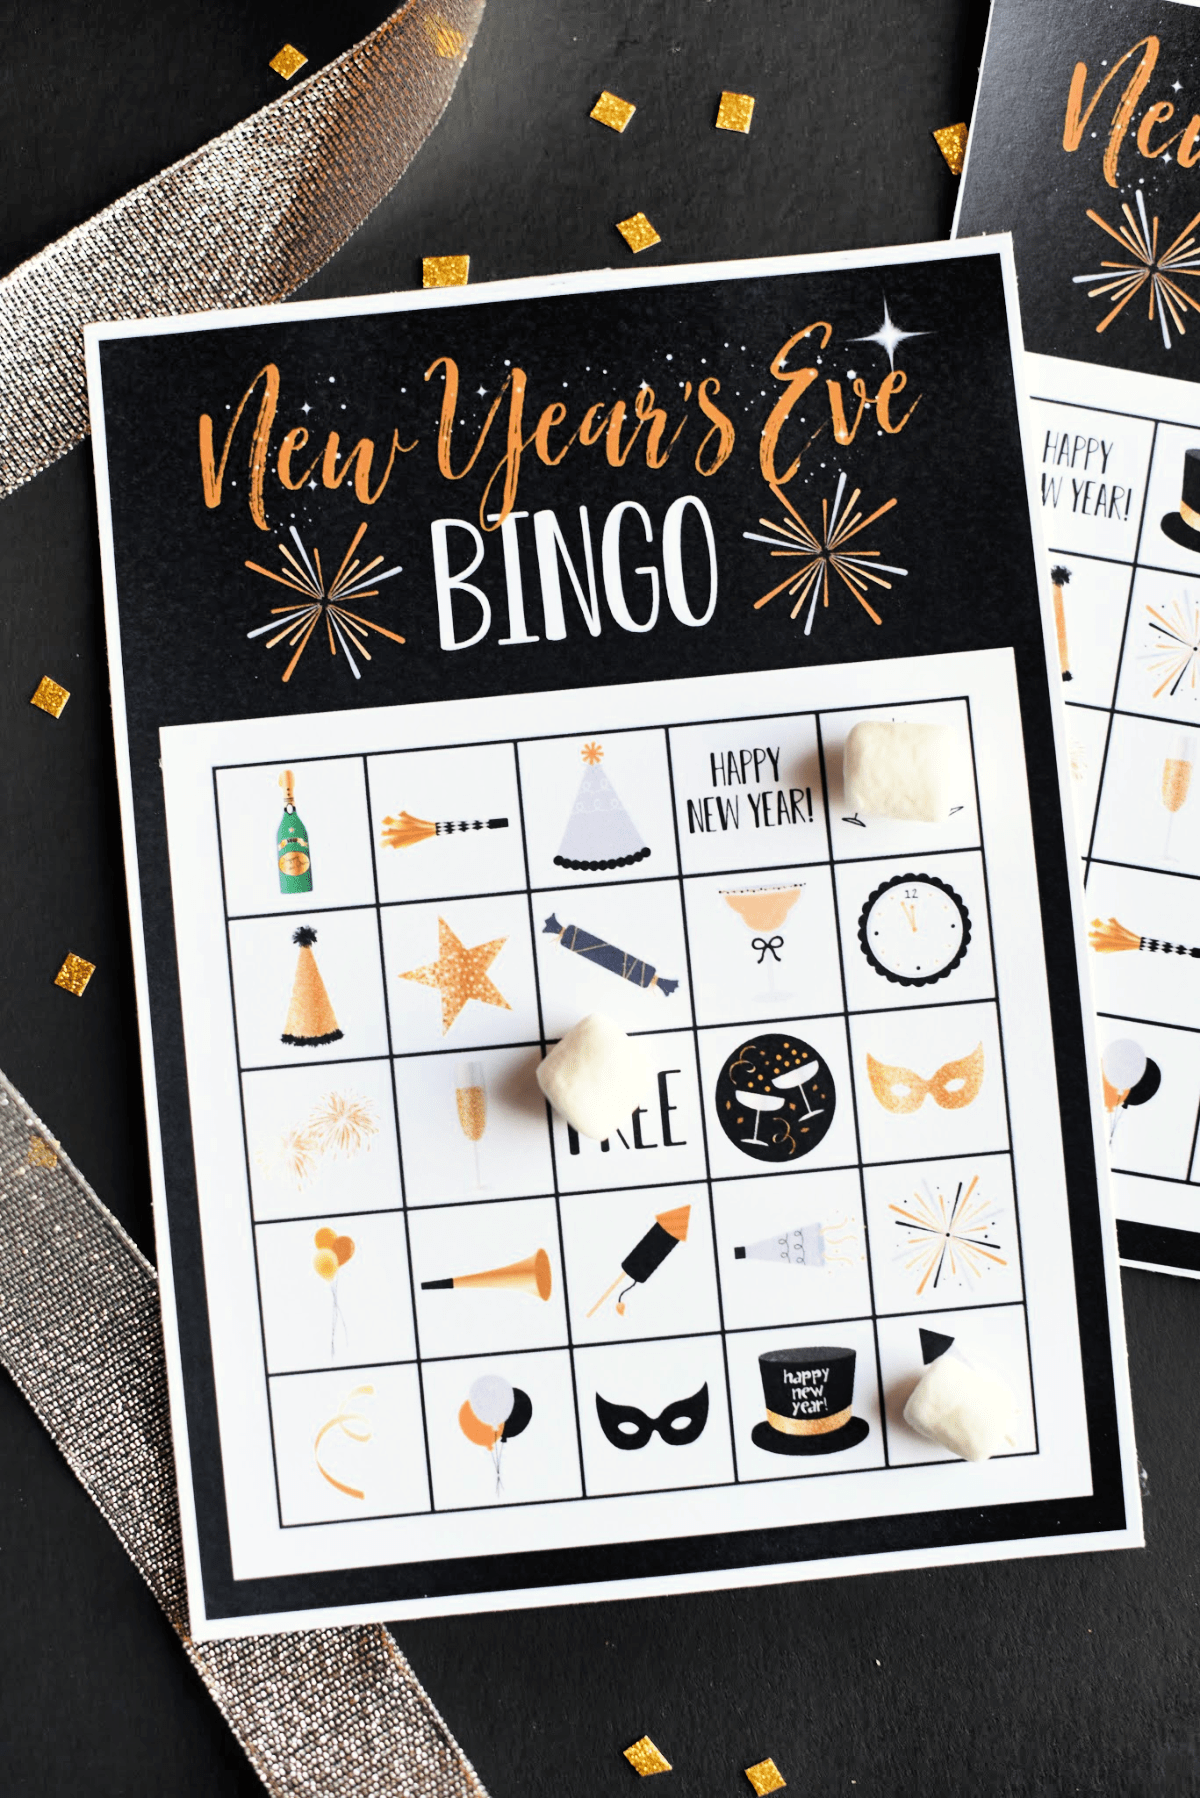 New Year's Eve Bingo Game to Print and Play